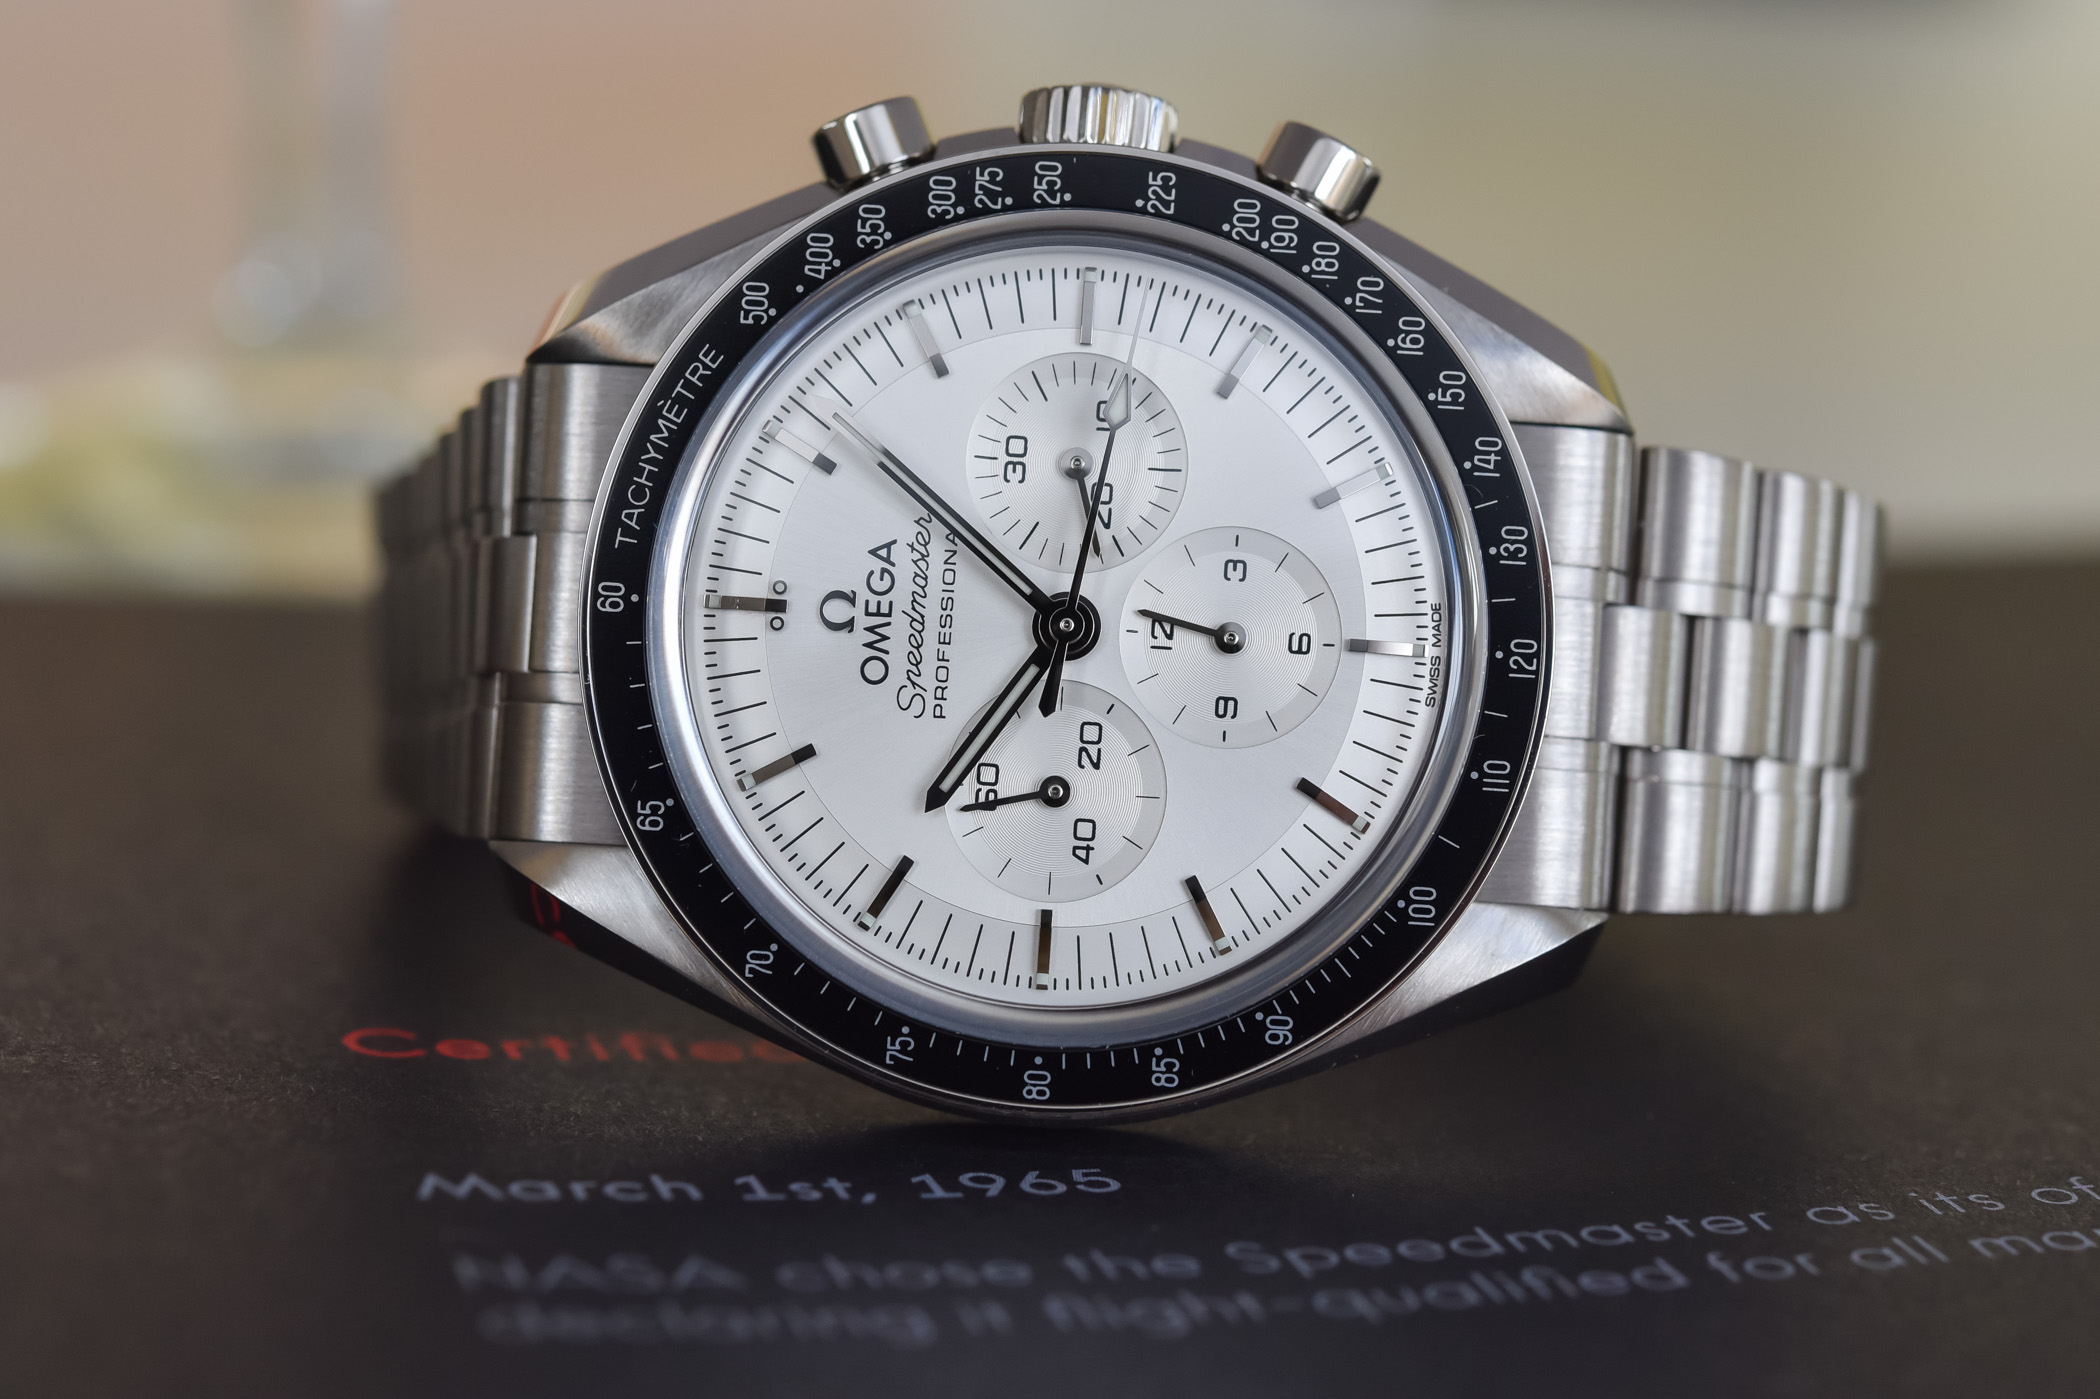 Omega Speedmaster Moonwatch Professional Co-Axial Master Chronometer Canopus Gold Silver dial 310.60.42.50.02.001